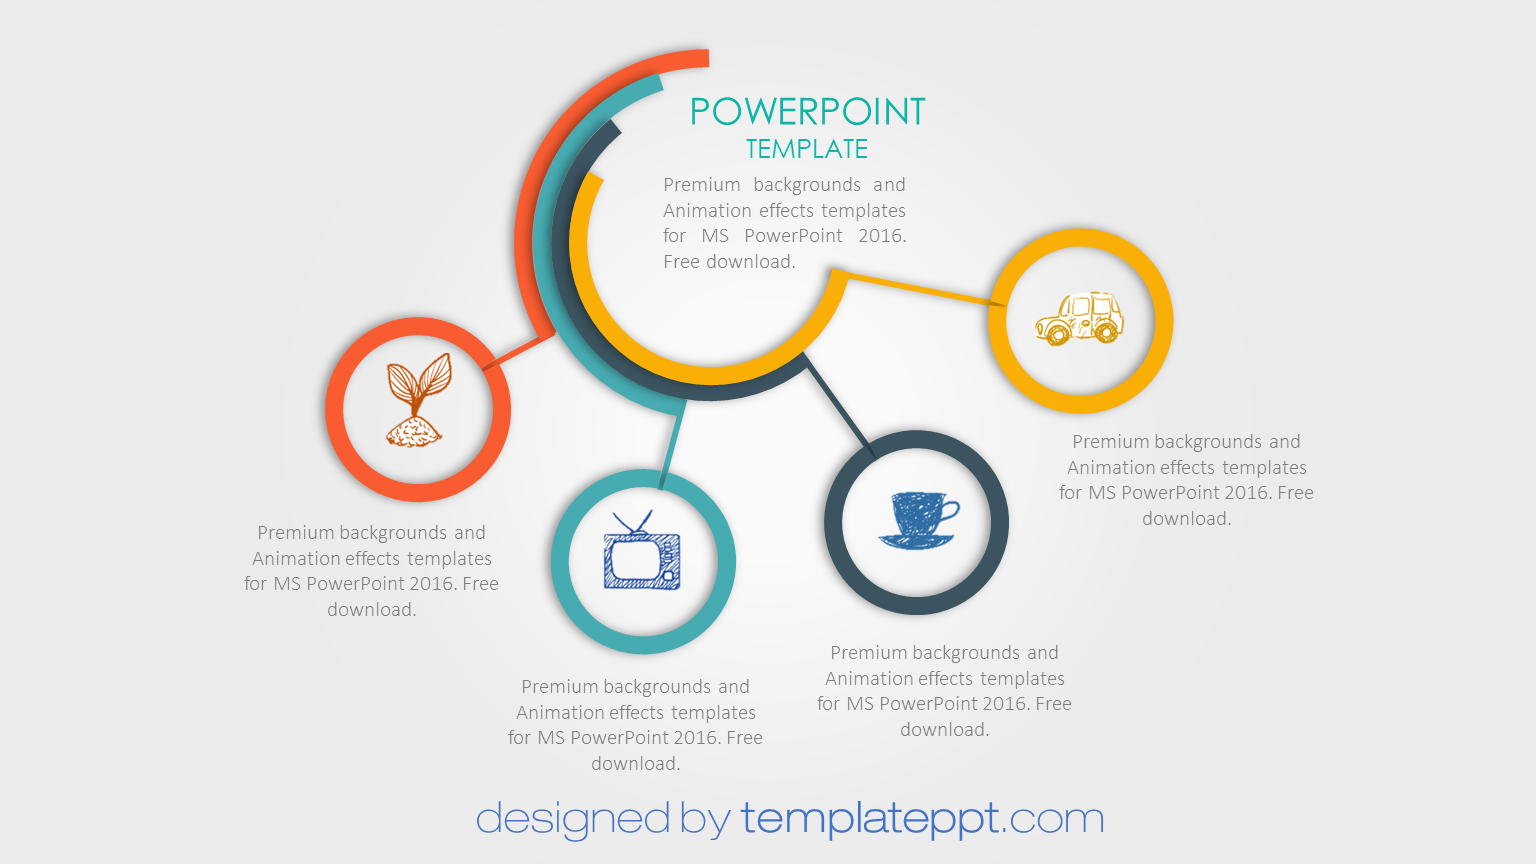 Download ppt template free doritrcatodos download ppt template free toneelgroepblik